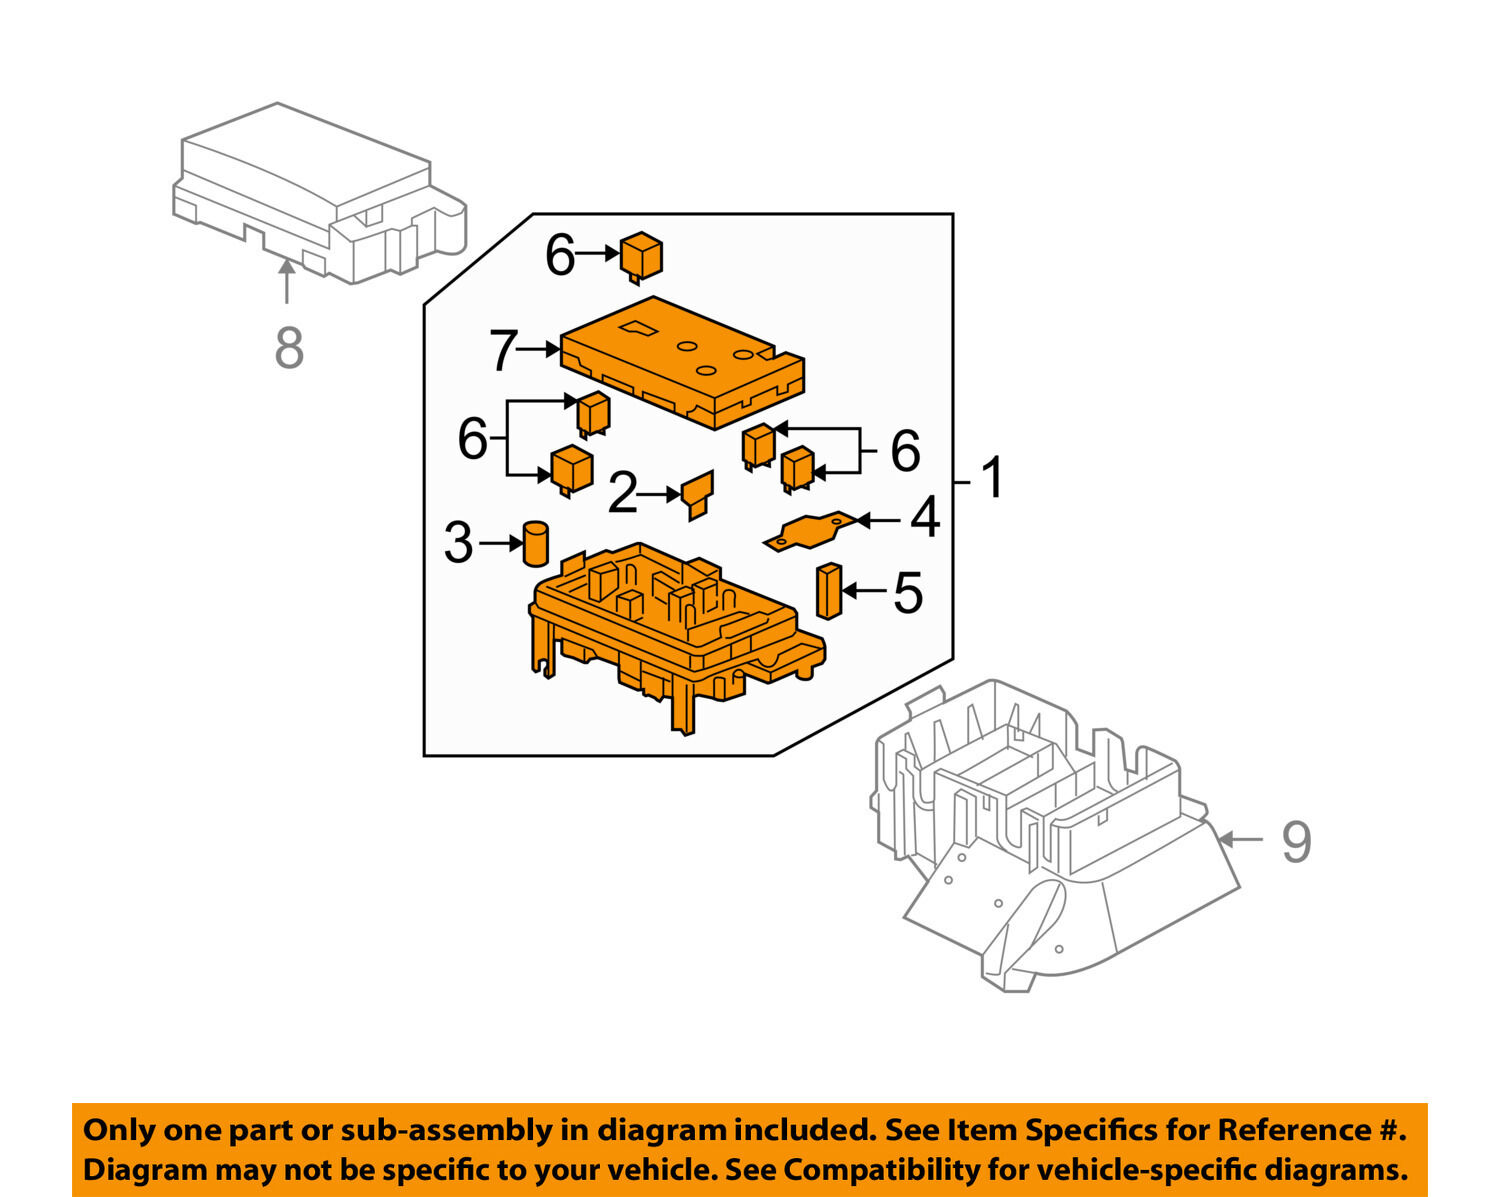 Buick Gm Oem 2007 Rainier Electrical Fuse Relay Box 25790682 07 Lacrosse Diagram 1 Of 2only 2 Available